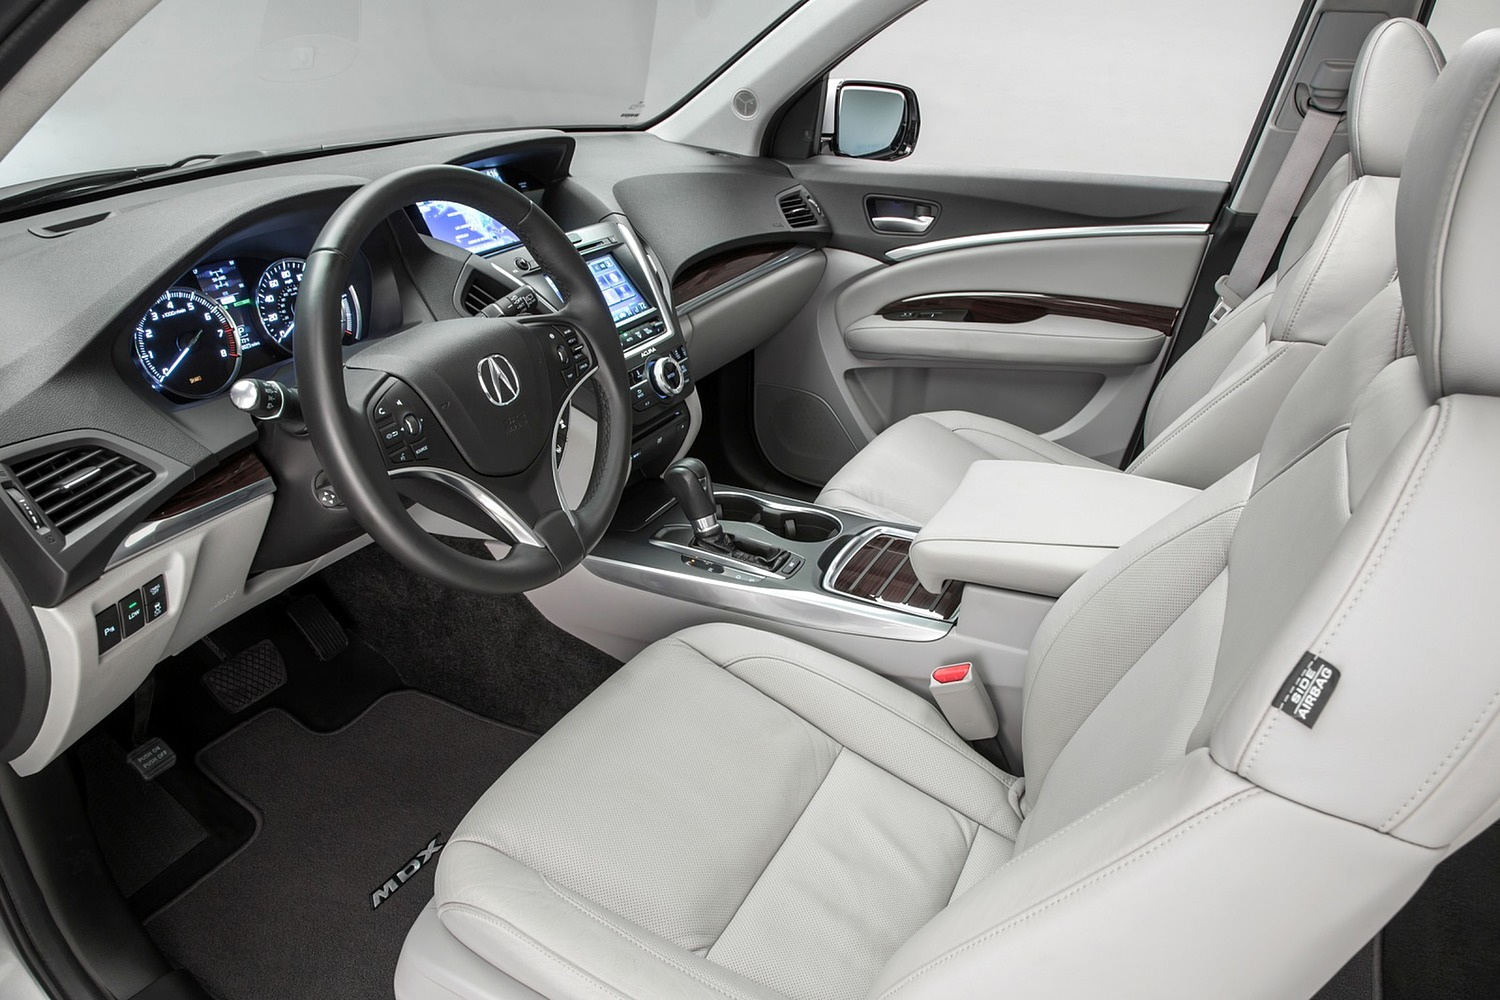 2016 Acura MDX SH-AWD w/Technology, Entertainment and AcuraWatch Plus Packages 4dr SUV Interior Shown